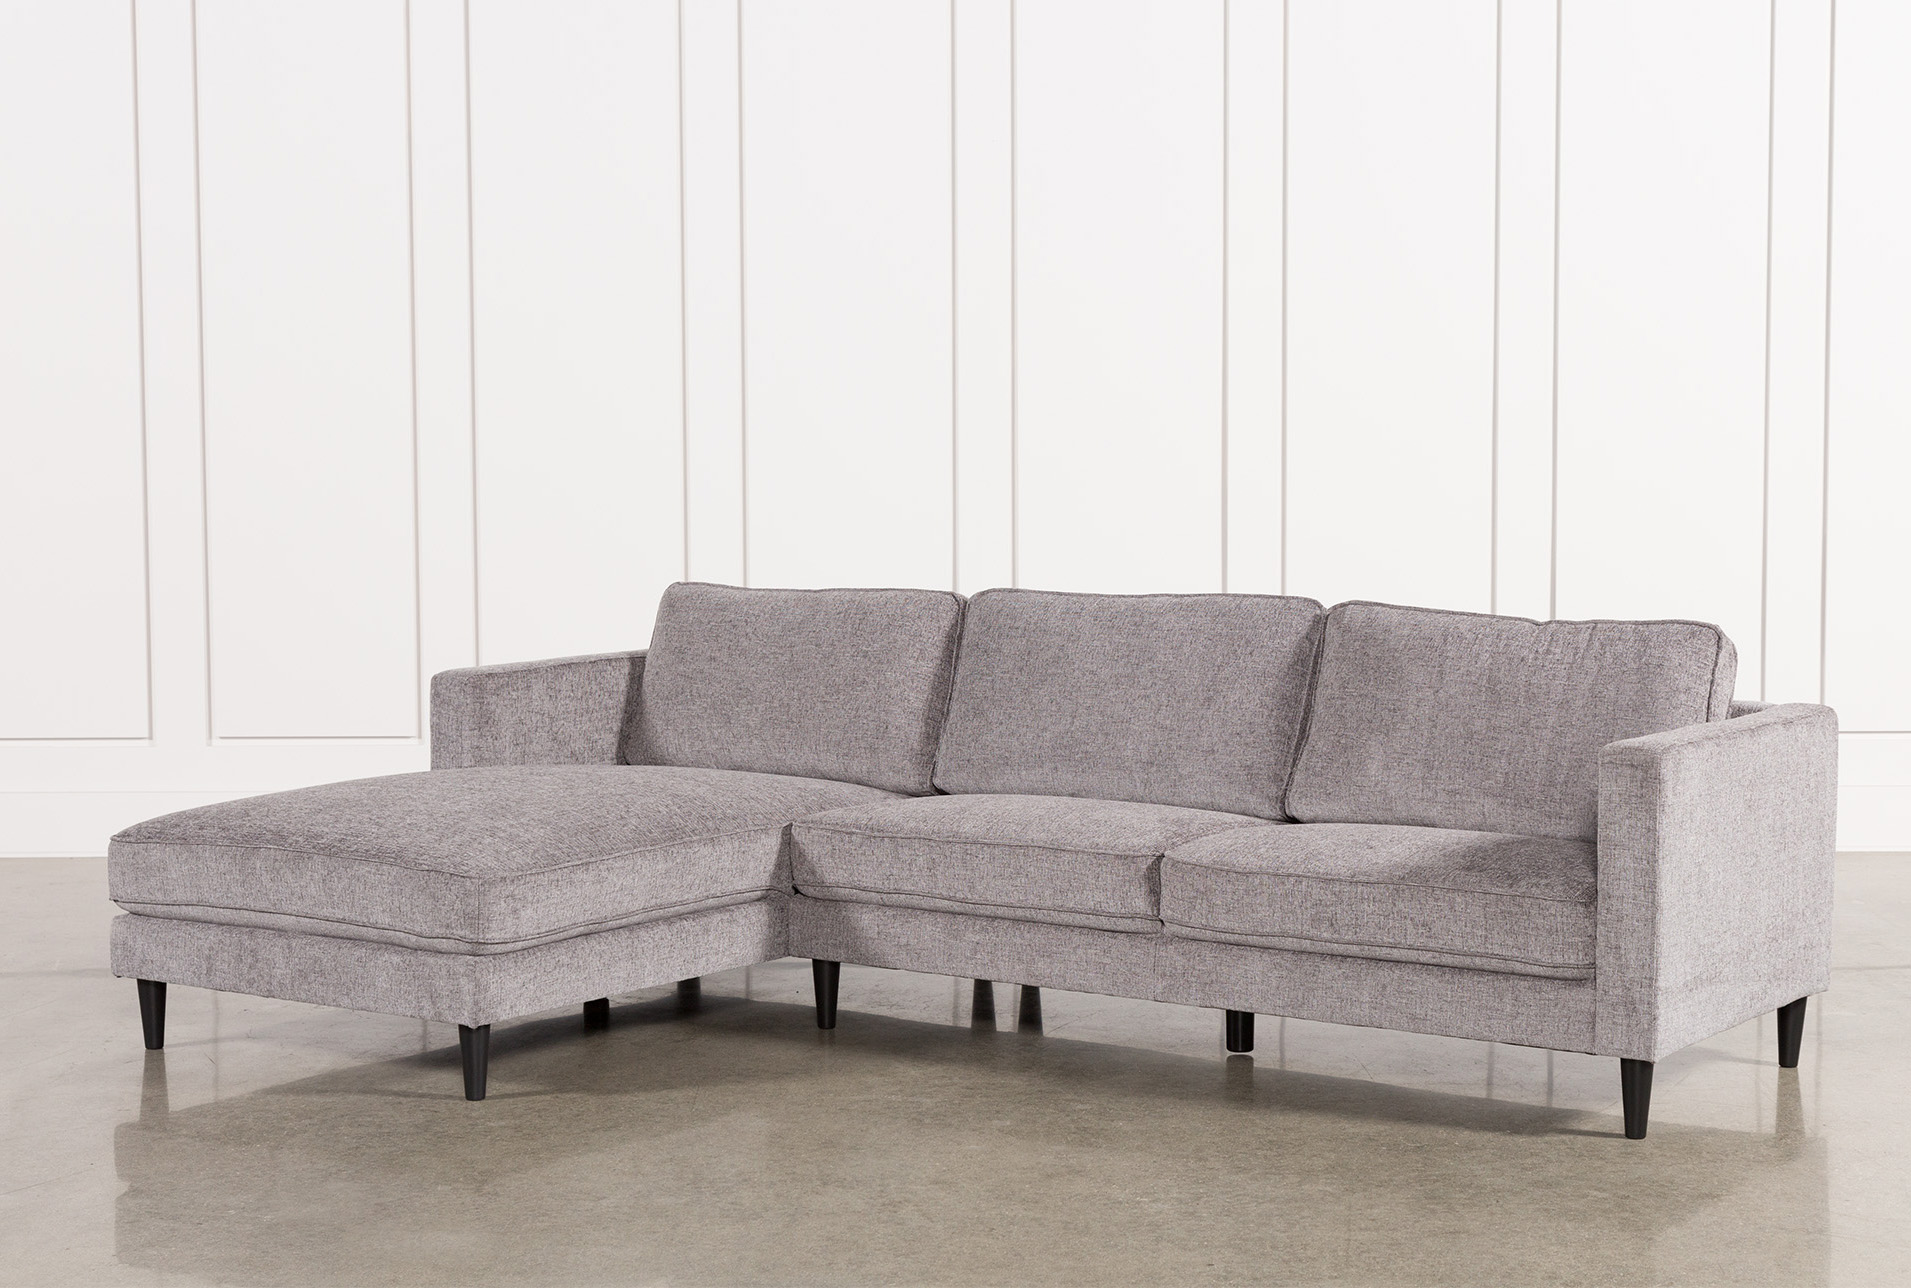 Delightful Cosmos Grey 2 Piece Sectional W/Laf Chaise (Qty: 1) Has Been Successfully  Added To Your Cart.